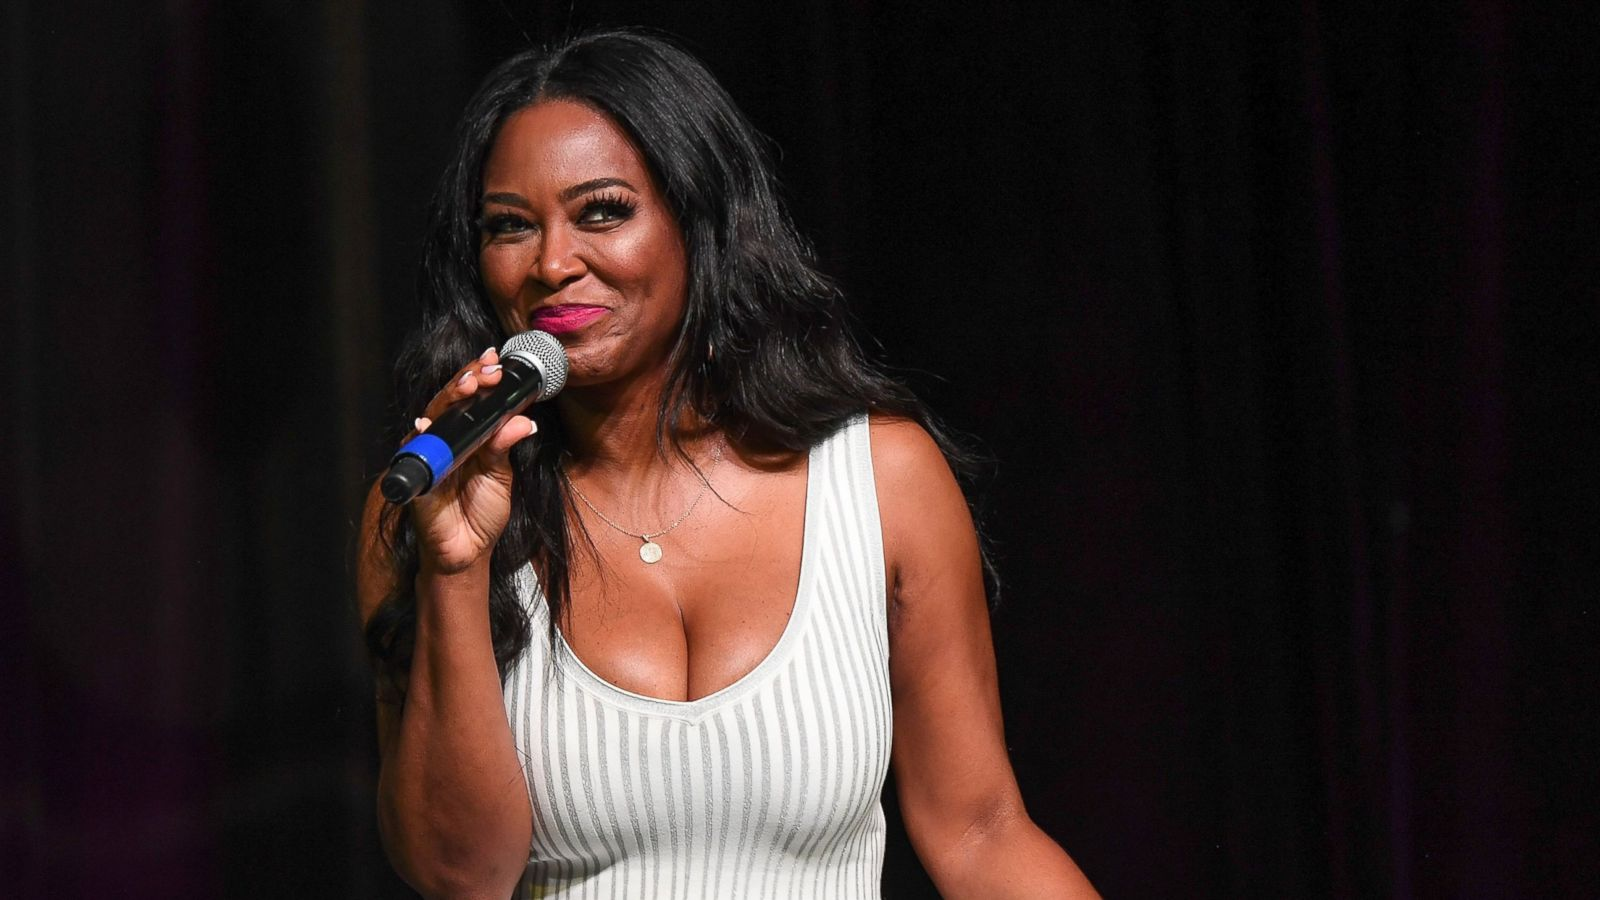 Kenya Moore Publicly Proclaims Her Love For Cynthia Bailey Following The Wedding